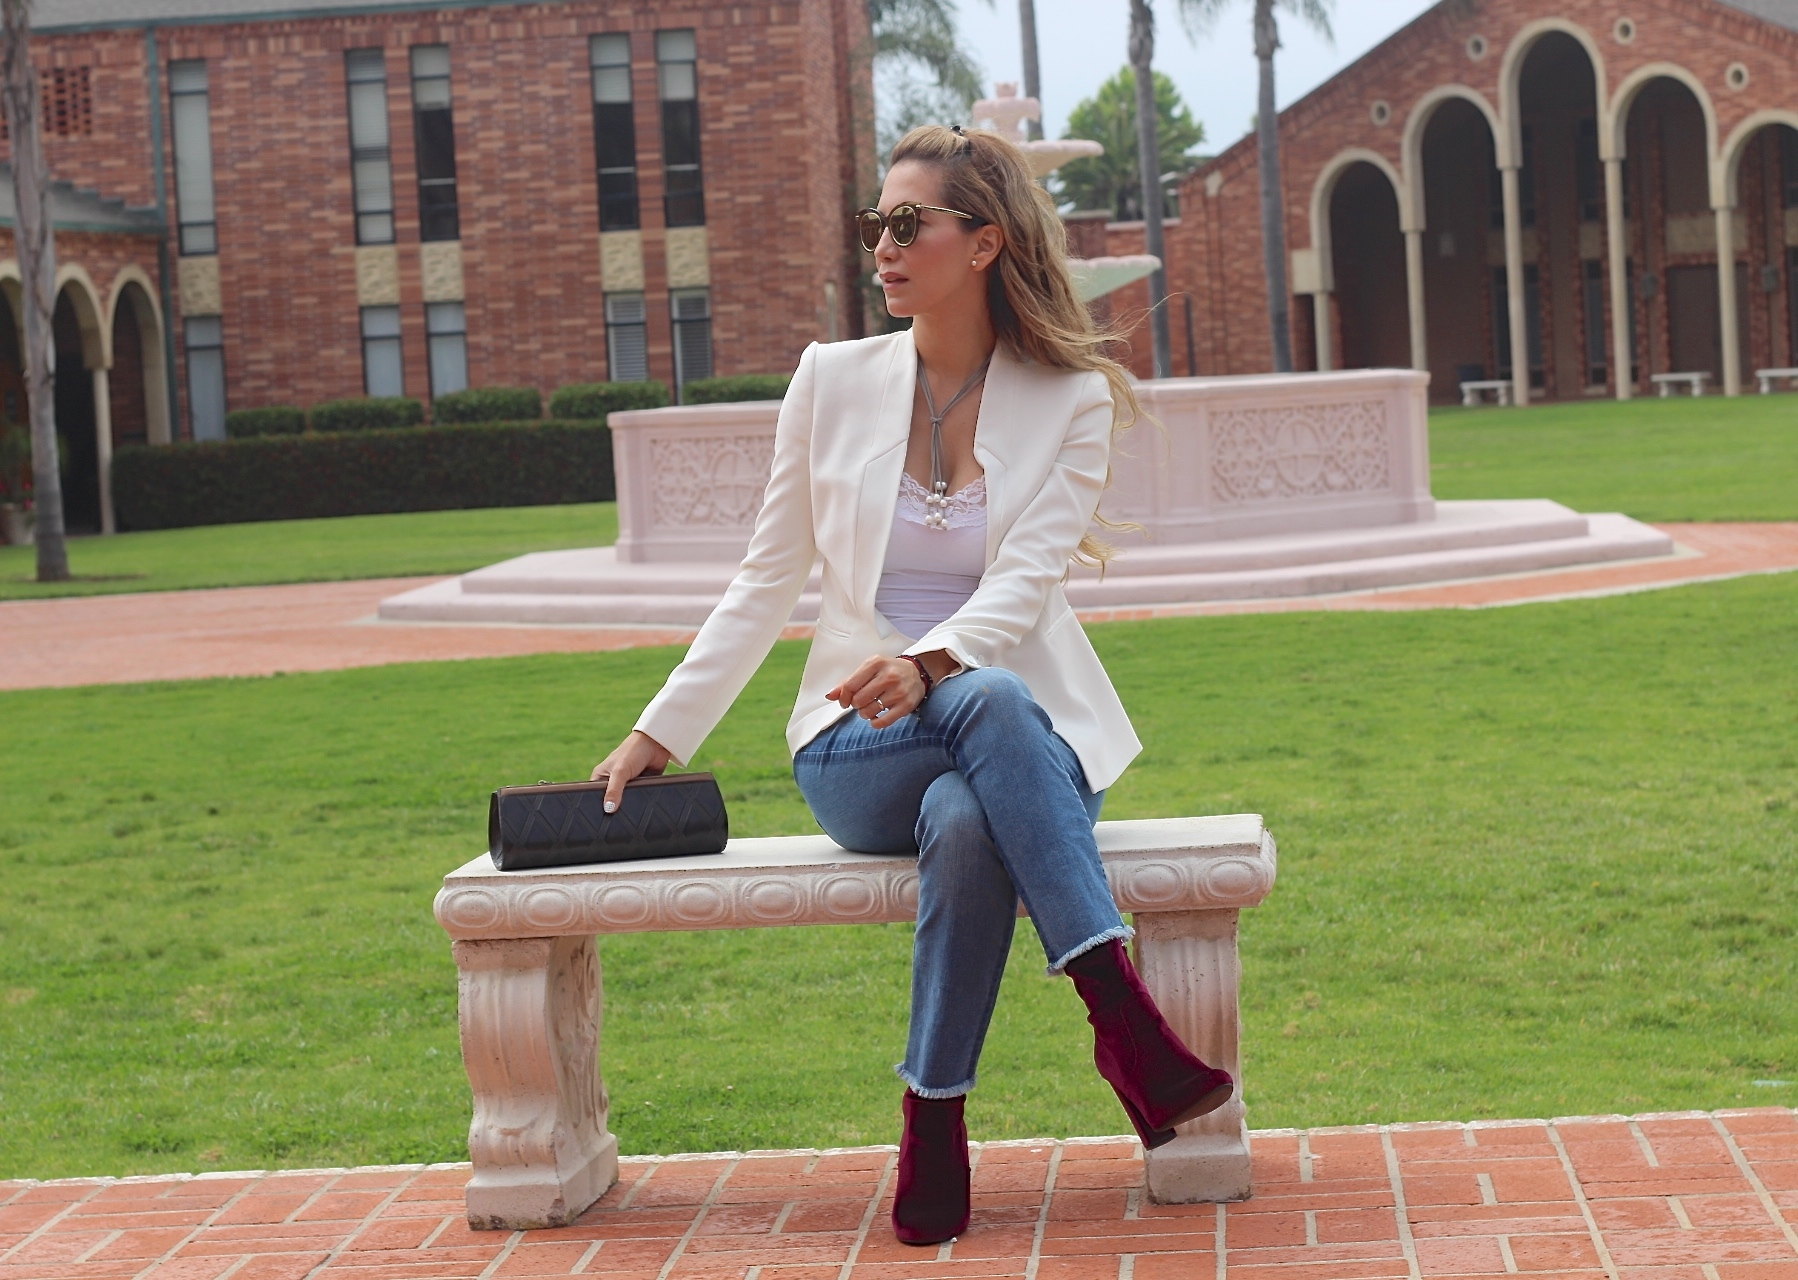 ADD A CHIC & EDGY TOUCH TO YOUR LOOK // WREN AND ROCH HANDBAGS